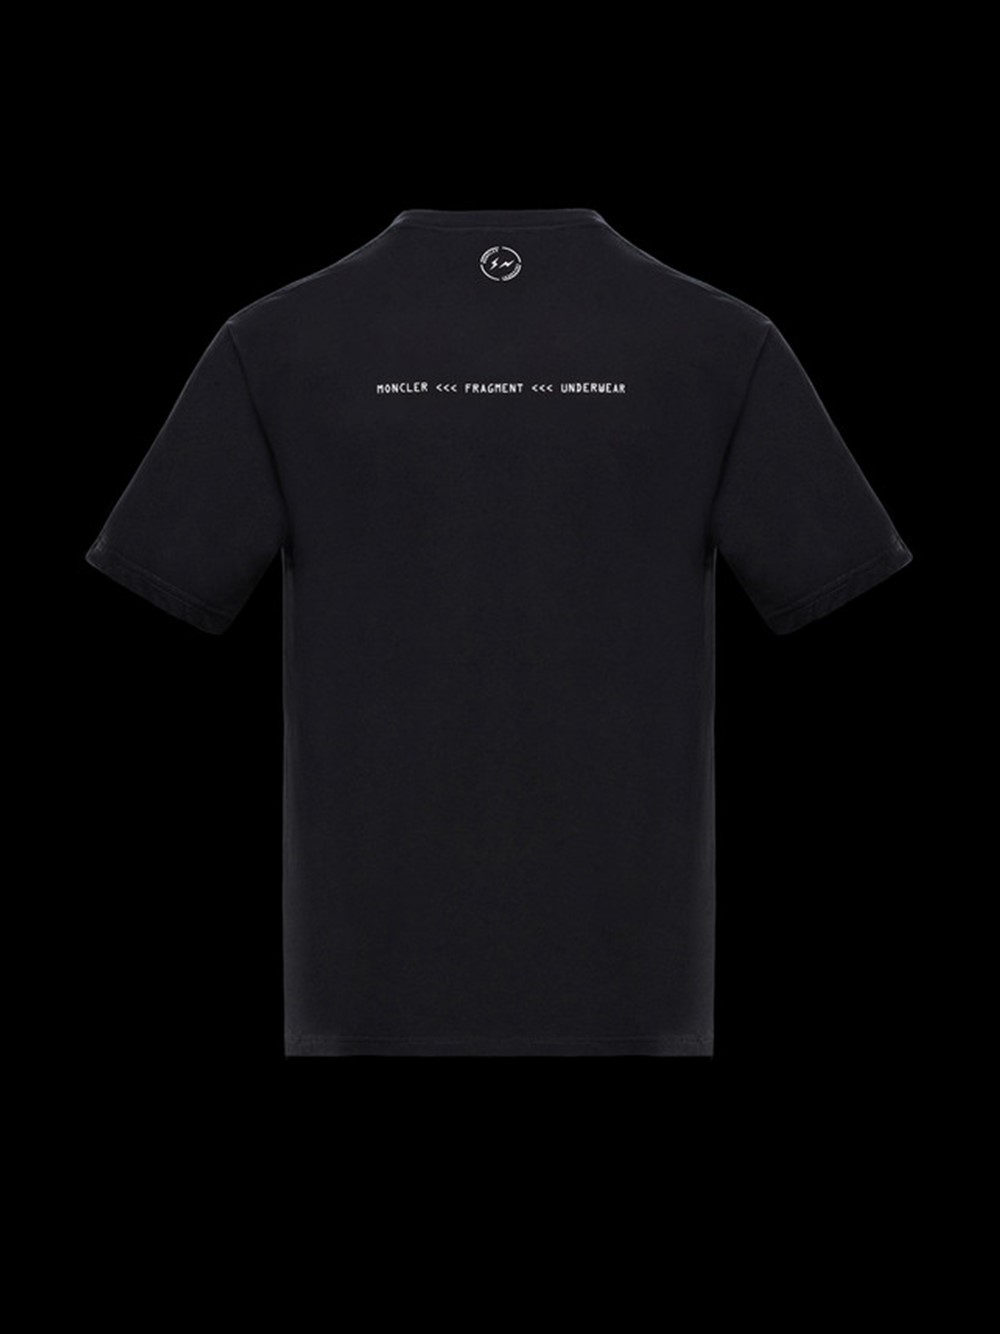 Moncler T SHIRT for Man, T shirts | Official Online Store